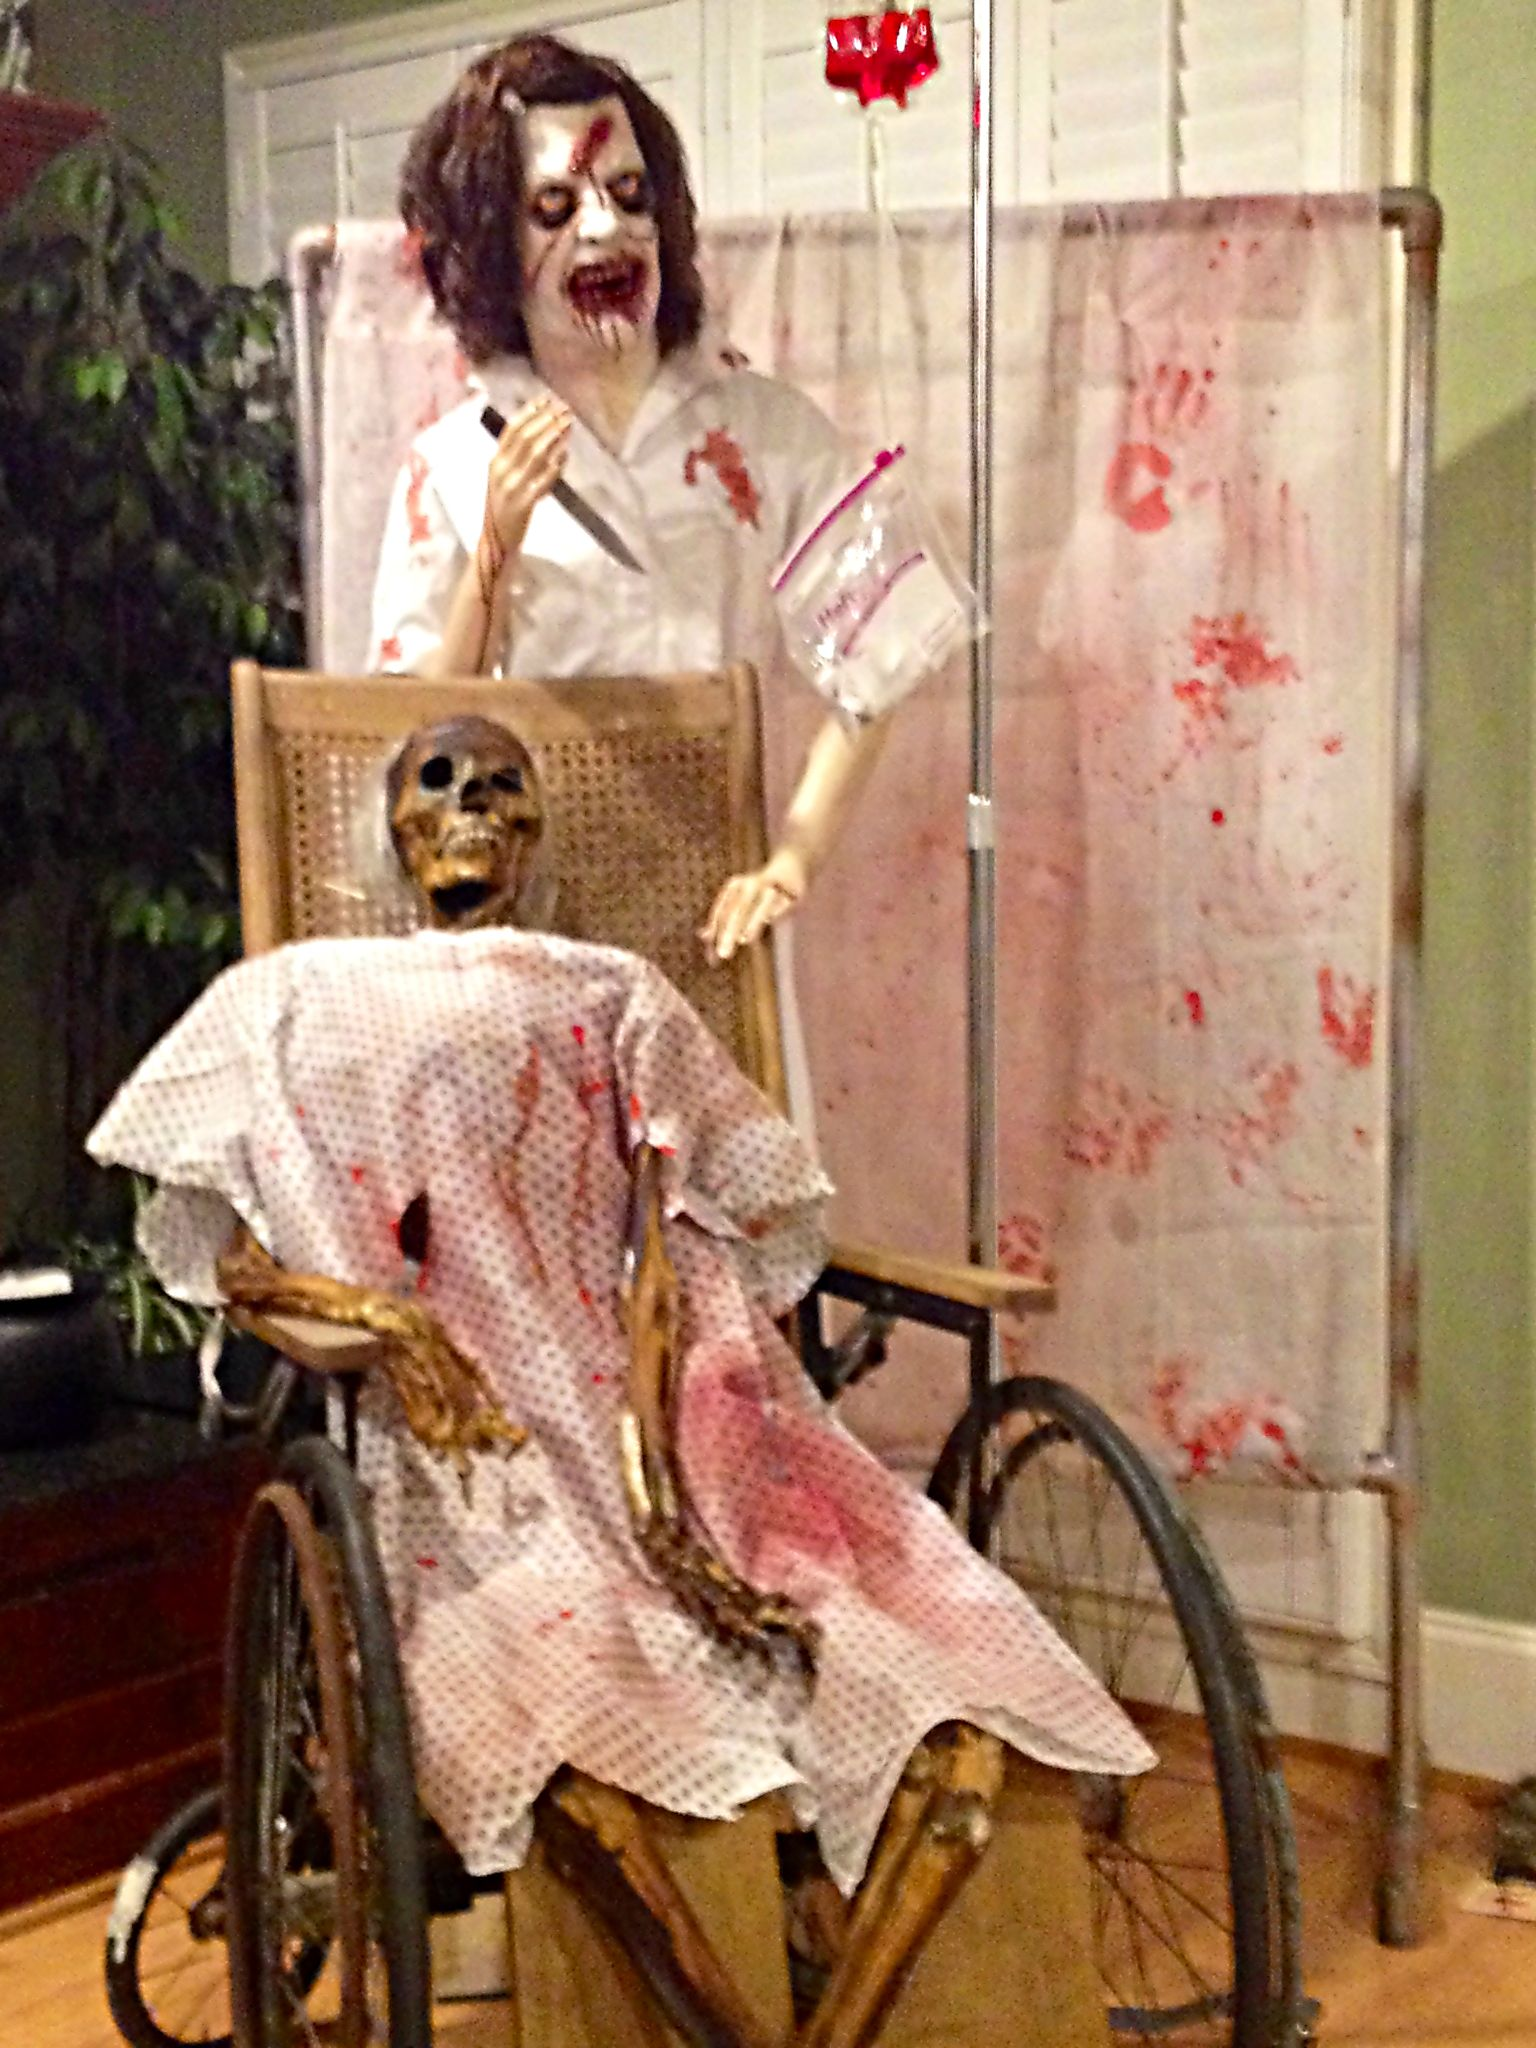 Sinister Surgery Asylum Wall Decorating Kit Halloween Party Decorations 5ft